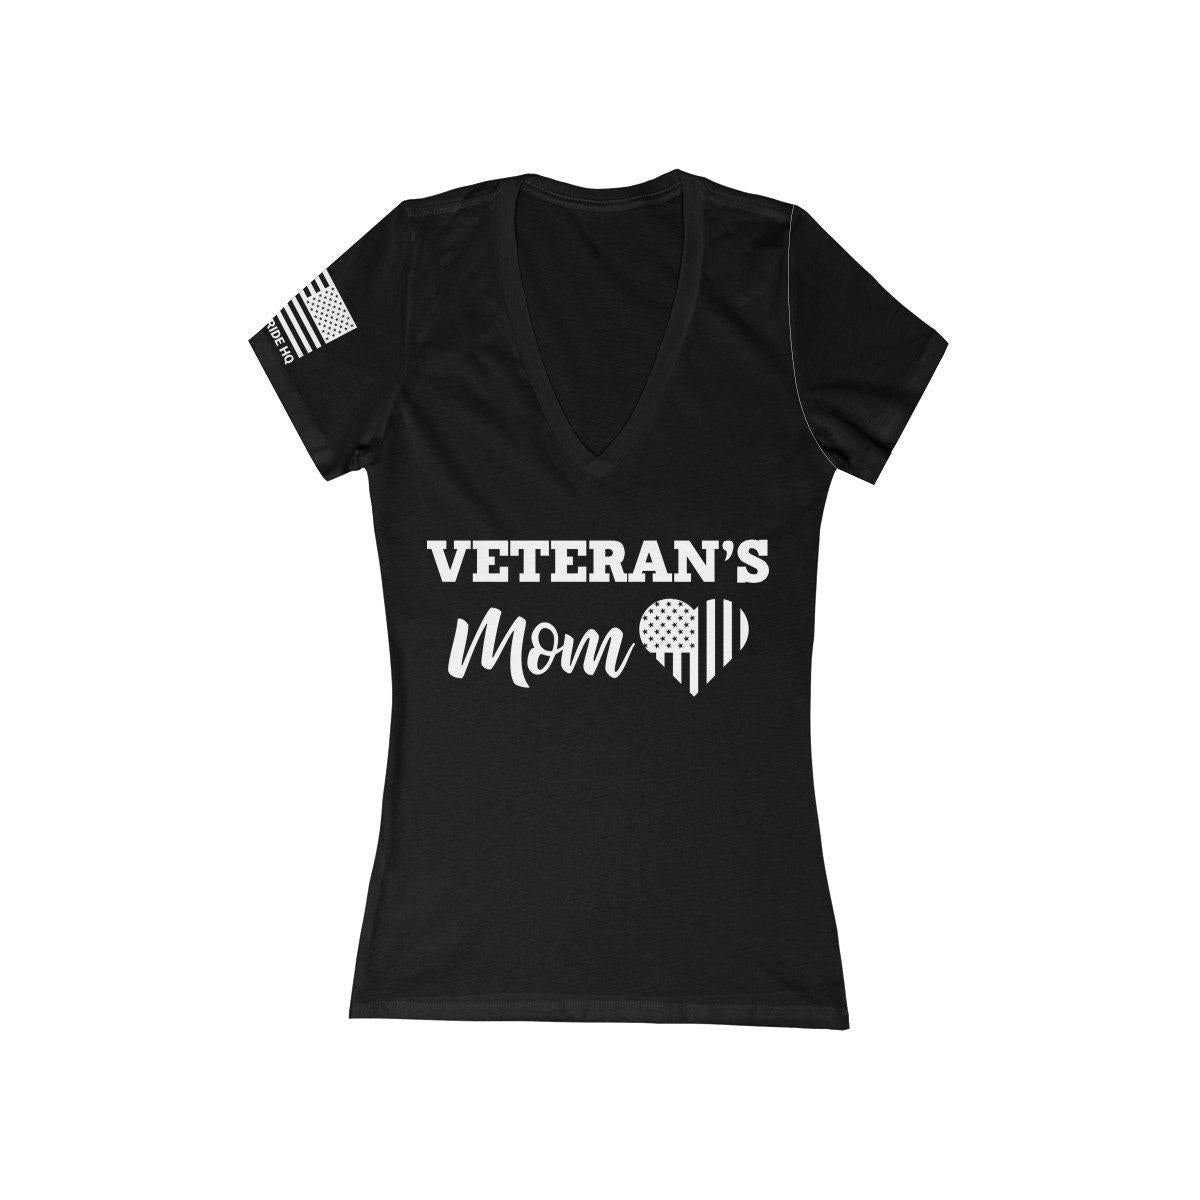 Veteran's Mom Women's V-Neck Tee